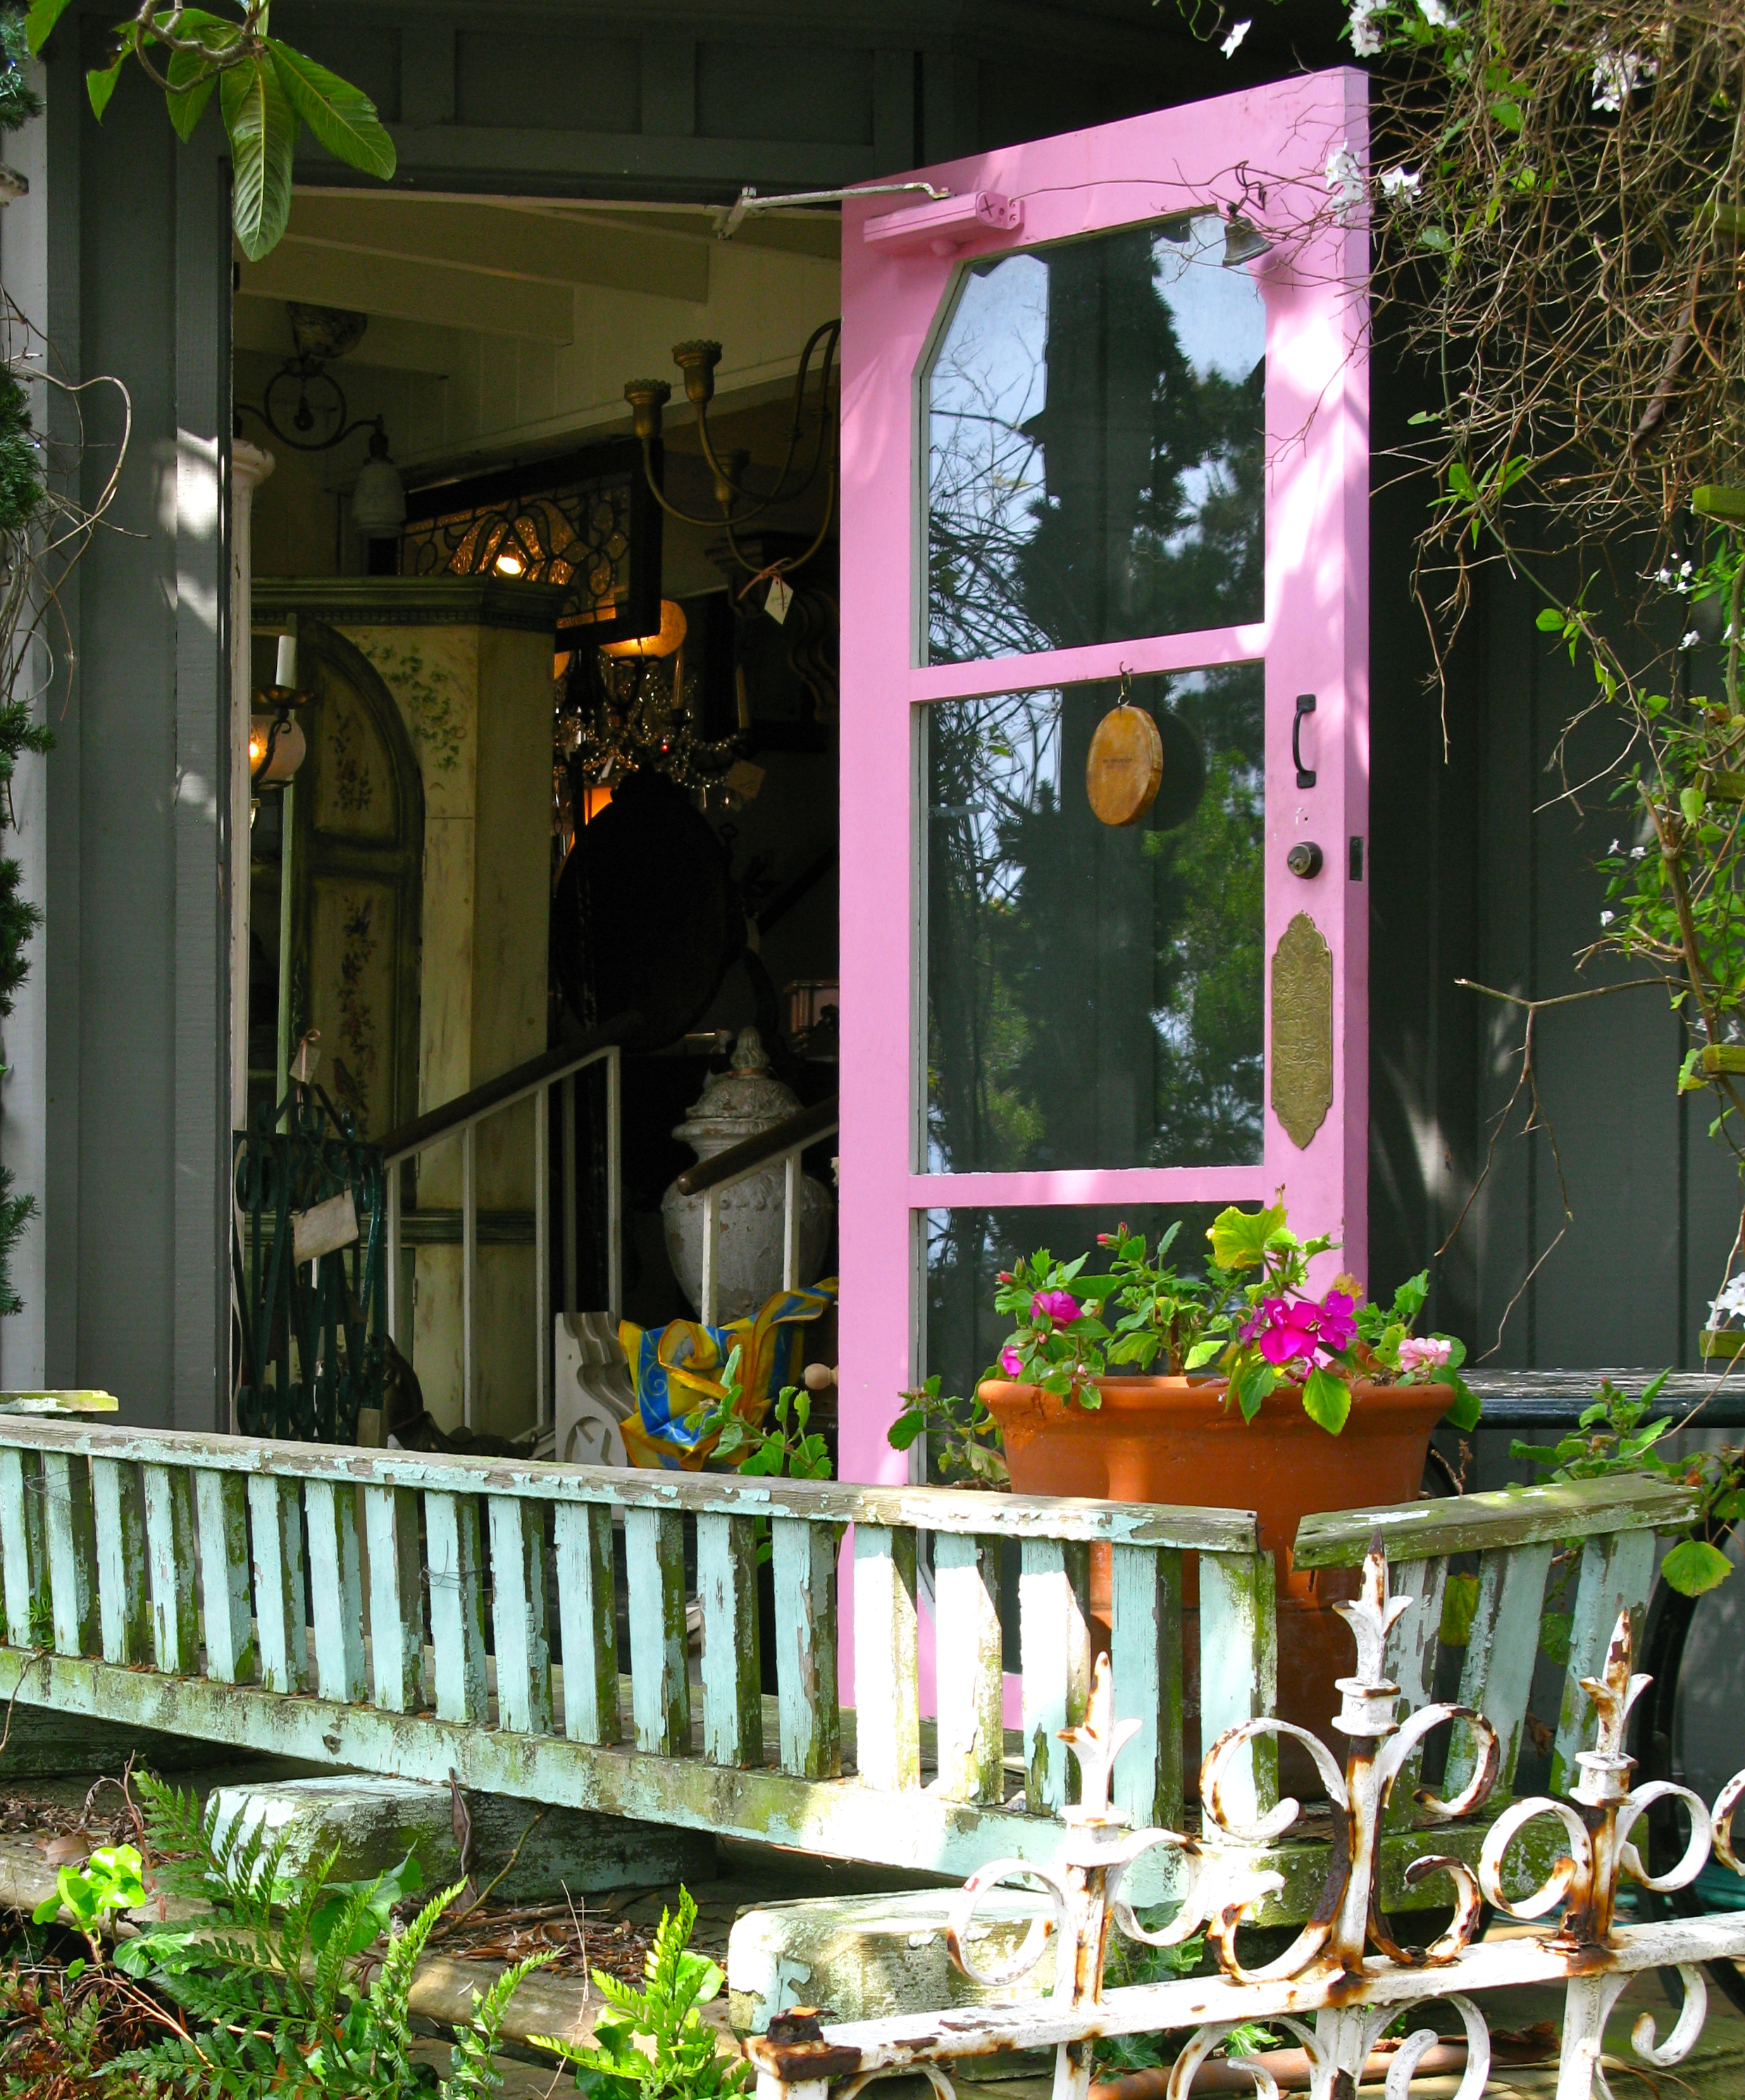 off the wall architectural antiques | once upon a time..tales from